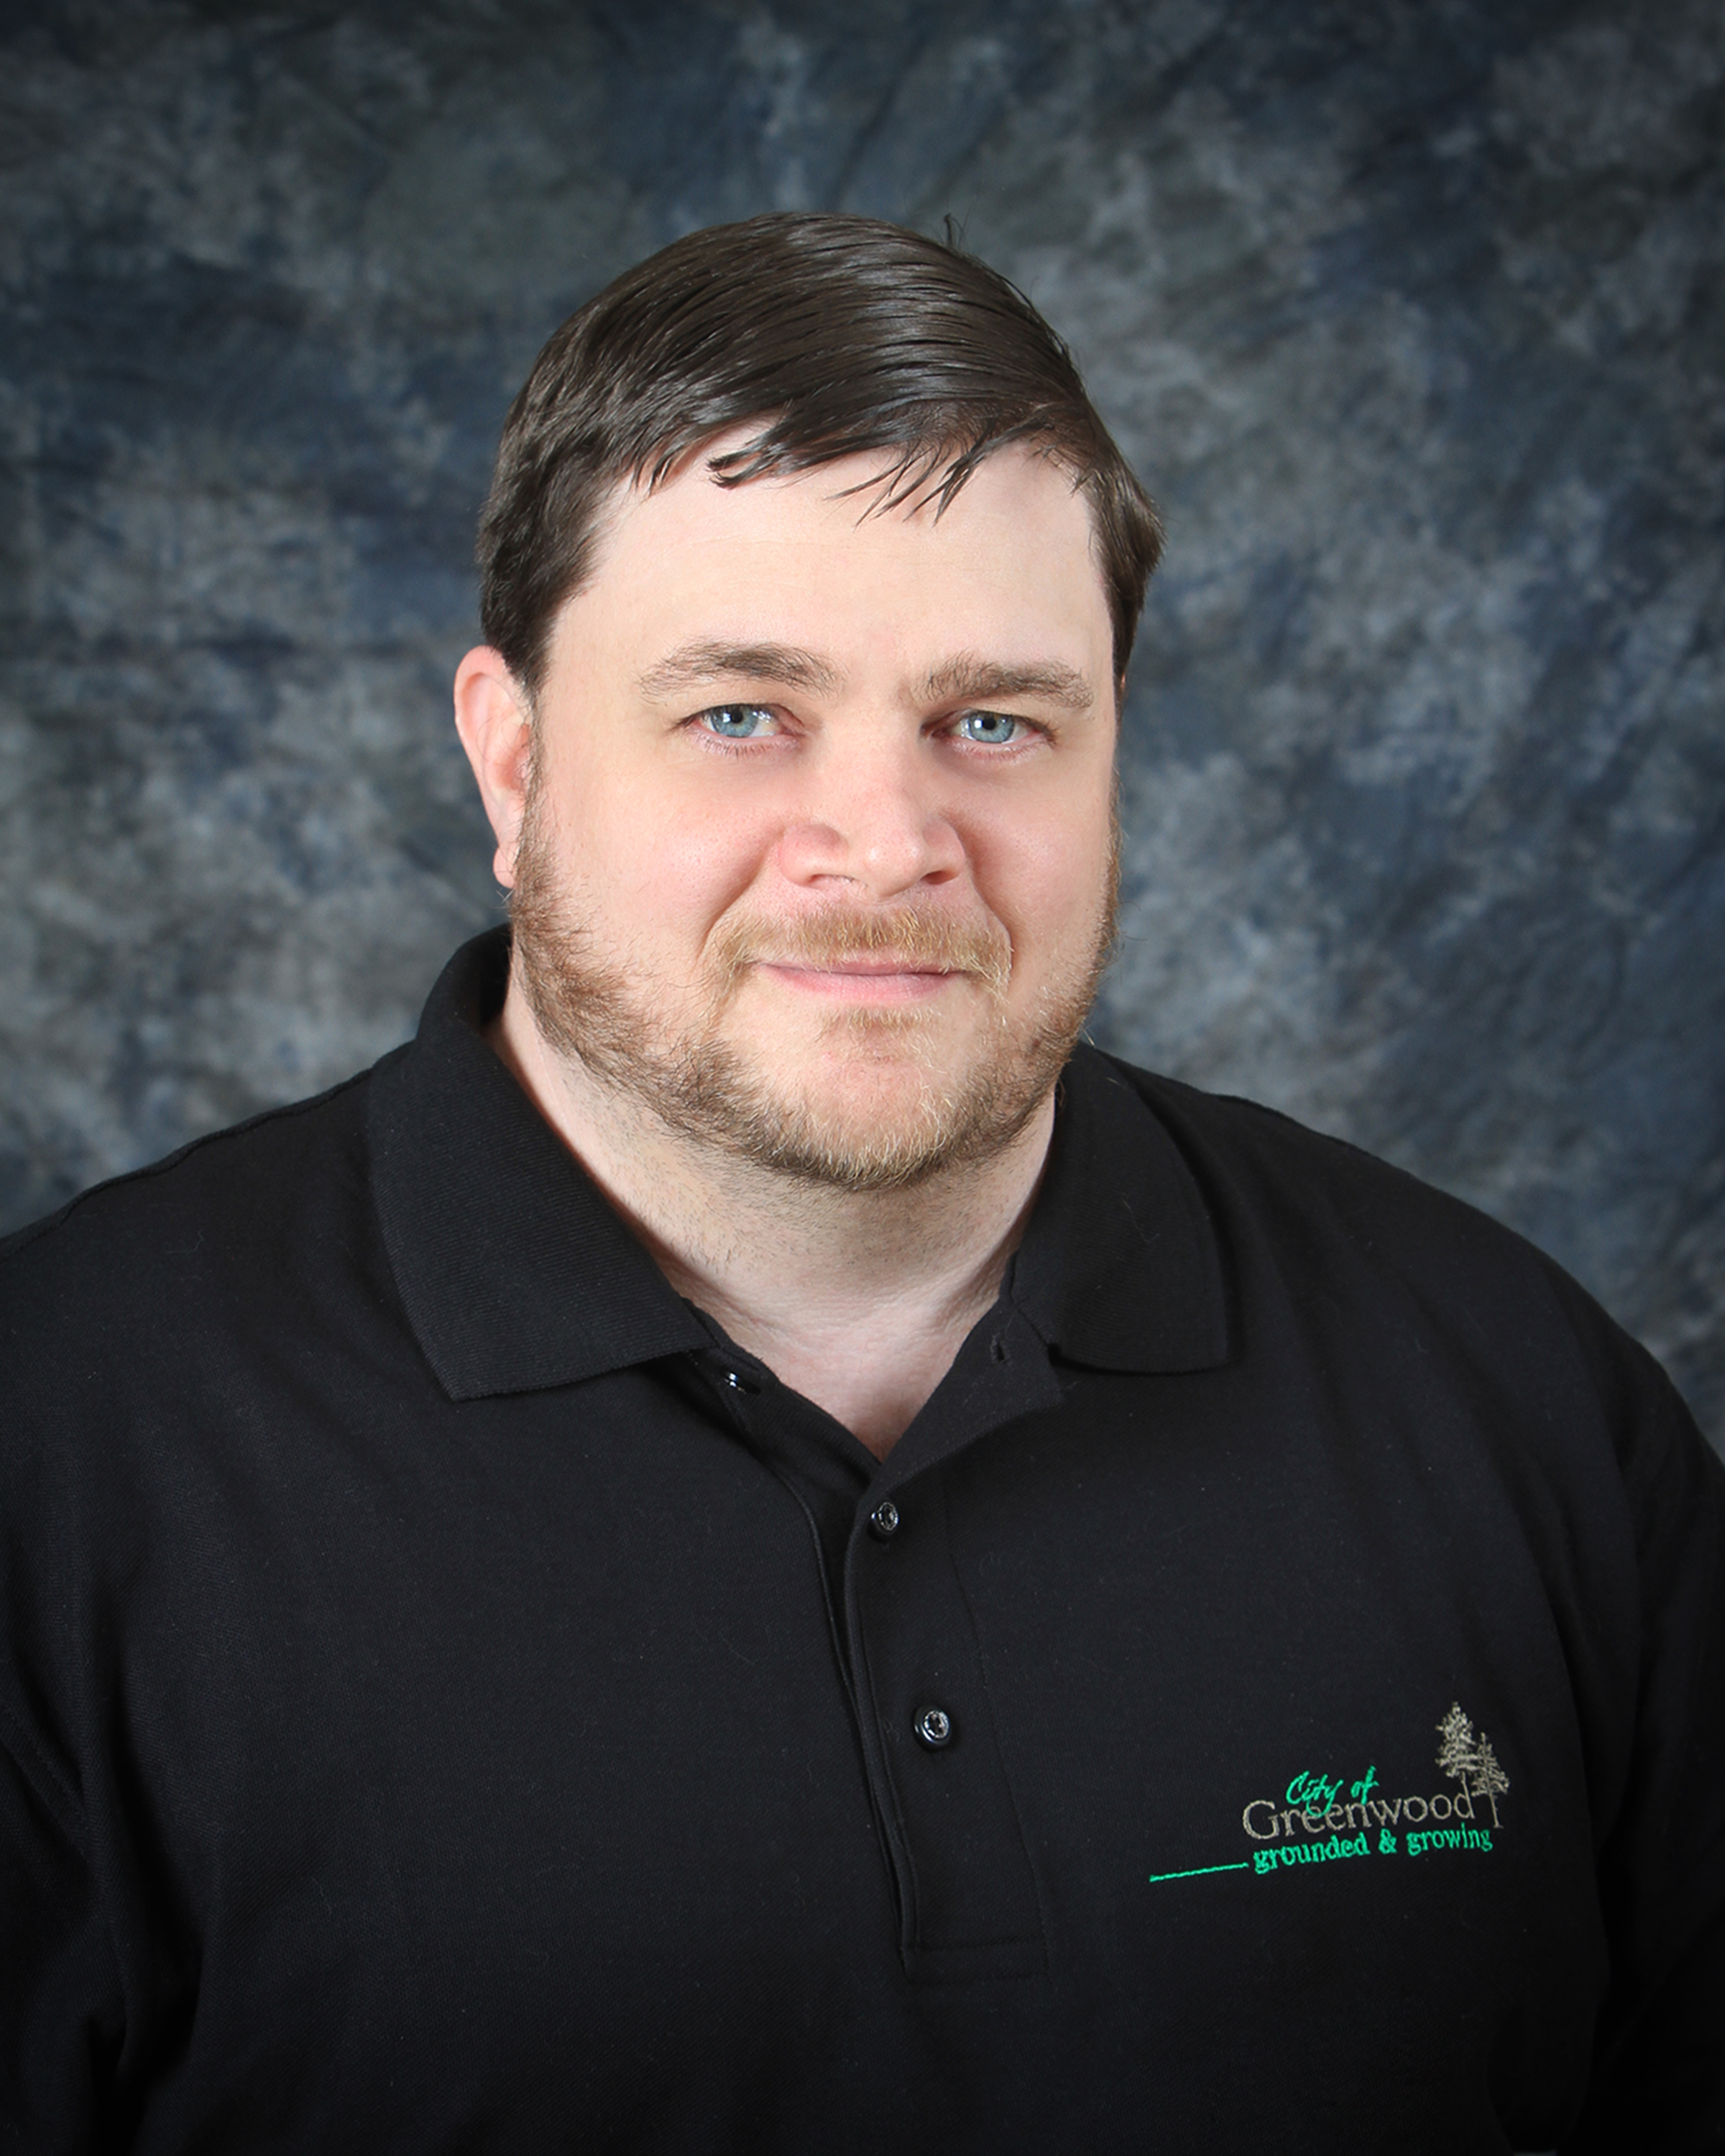 Ryan Ashbeck - Ward Two Representative  (715) 267-6205  council04@greenwoodwi.com  First Elected: 2018  Current Term 2018 - 2020